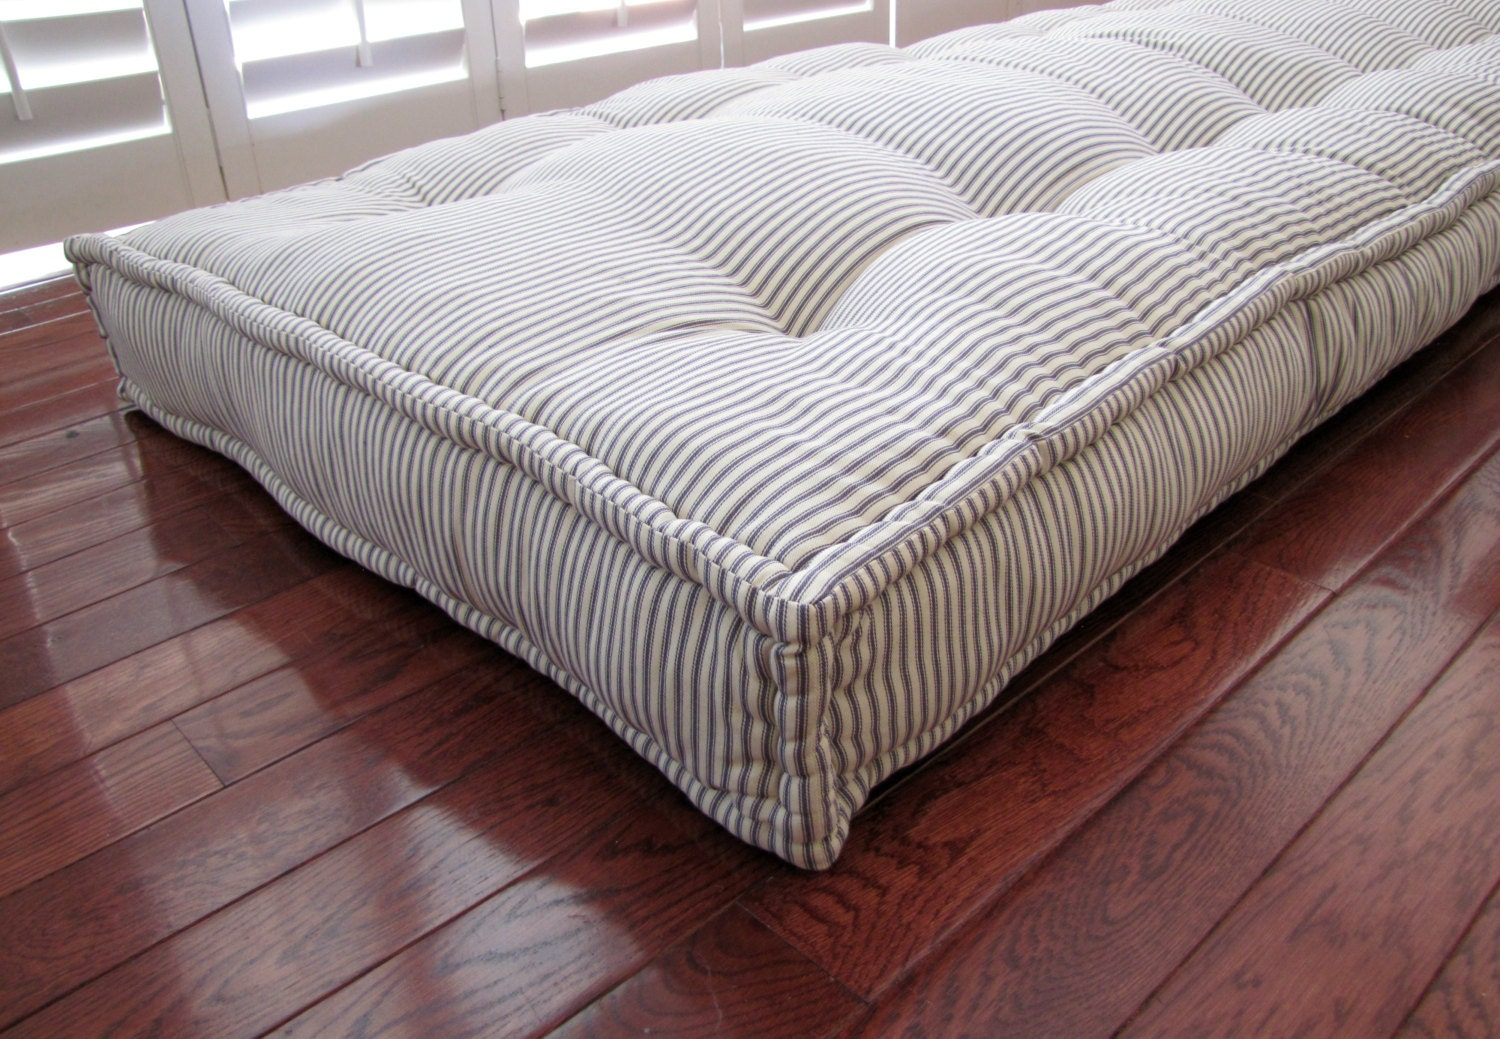 How To Make Extra Large Floor Pillows : Custom Cushions Blue Ticking Stripe French Mattress